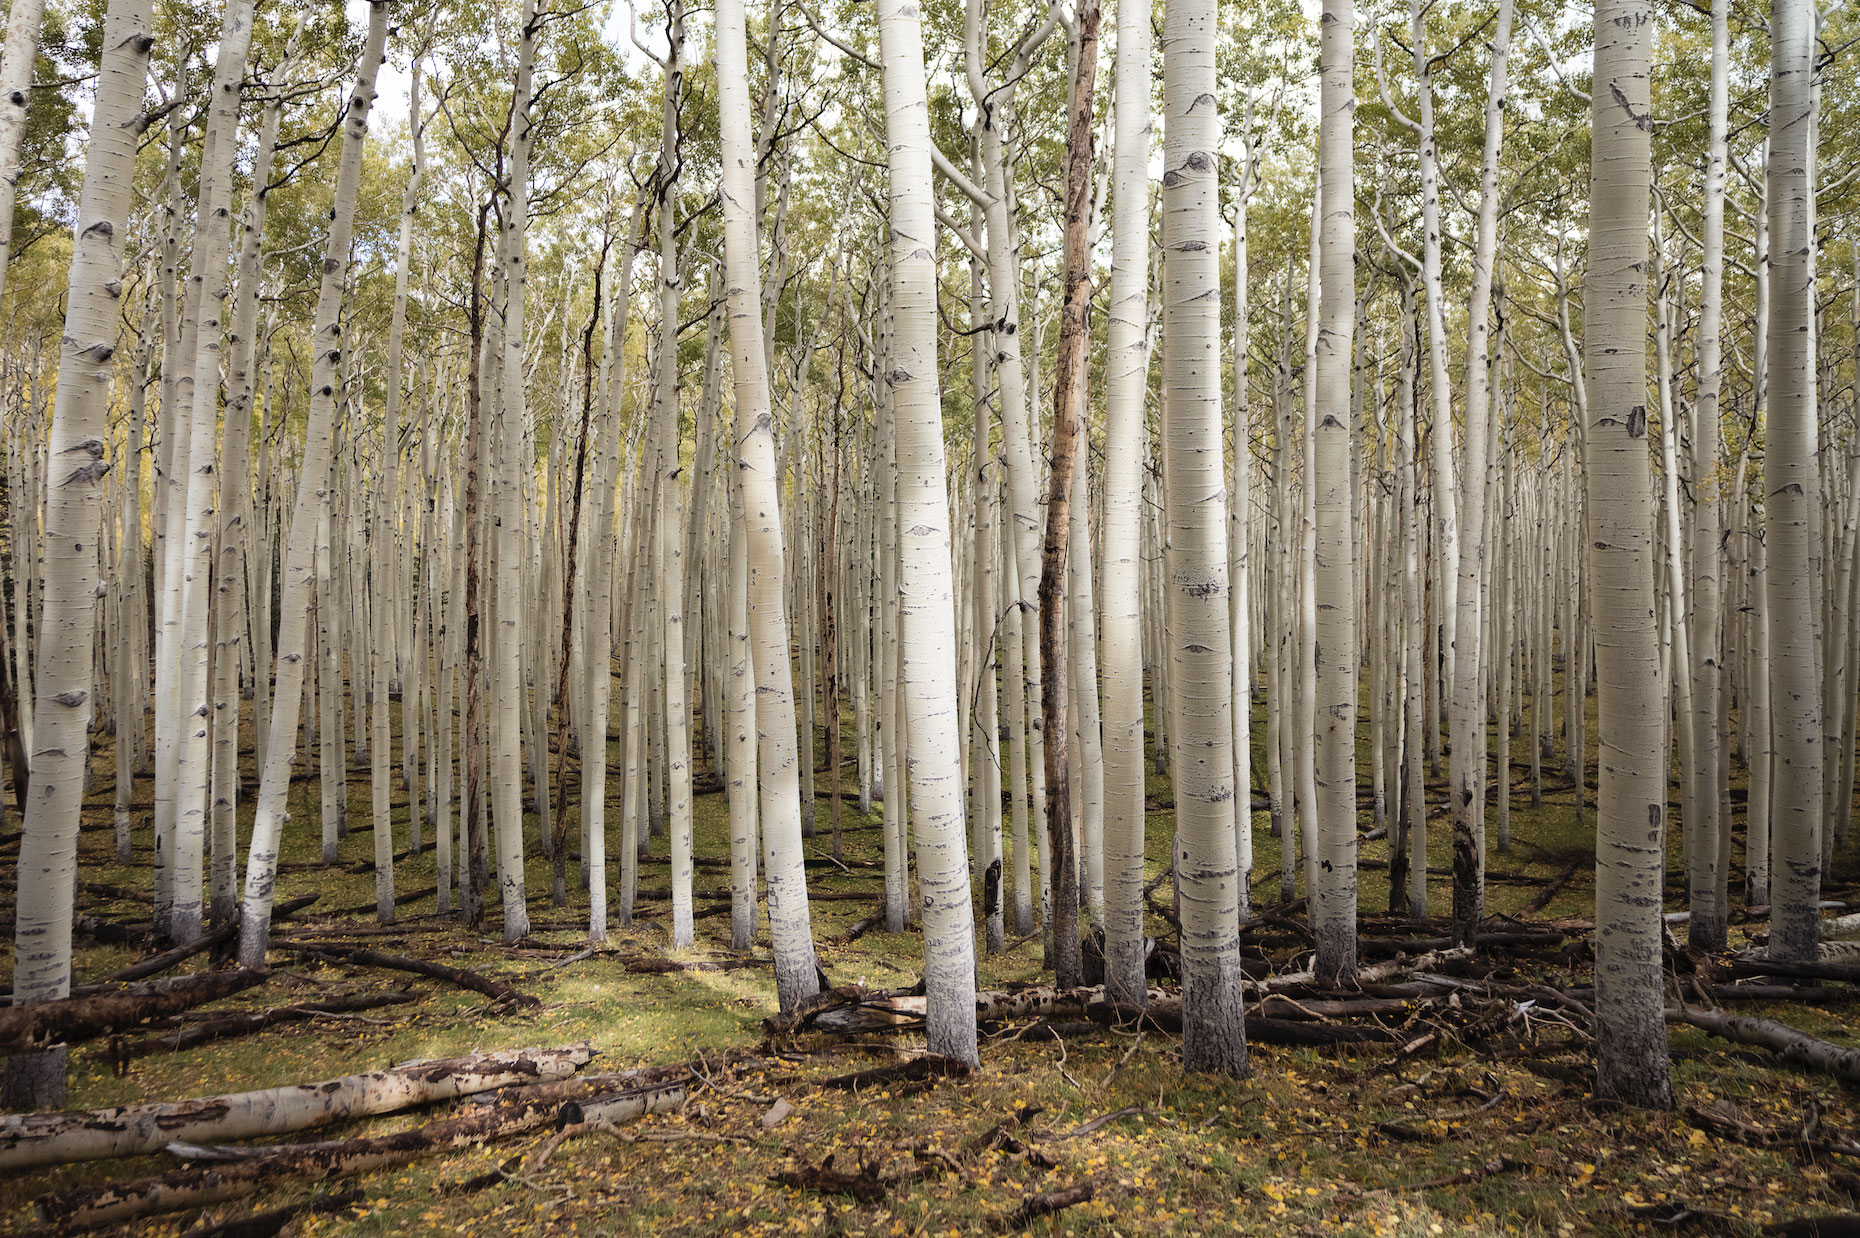 A pano forest image.